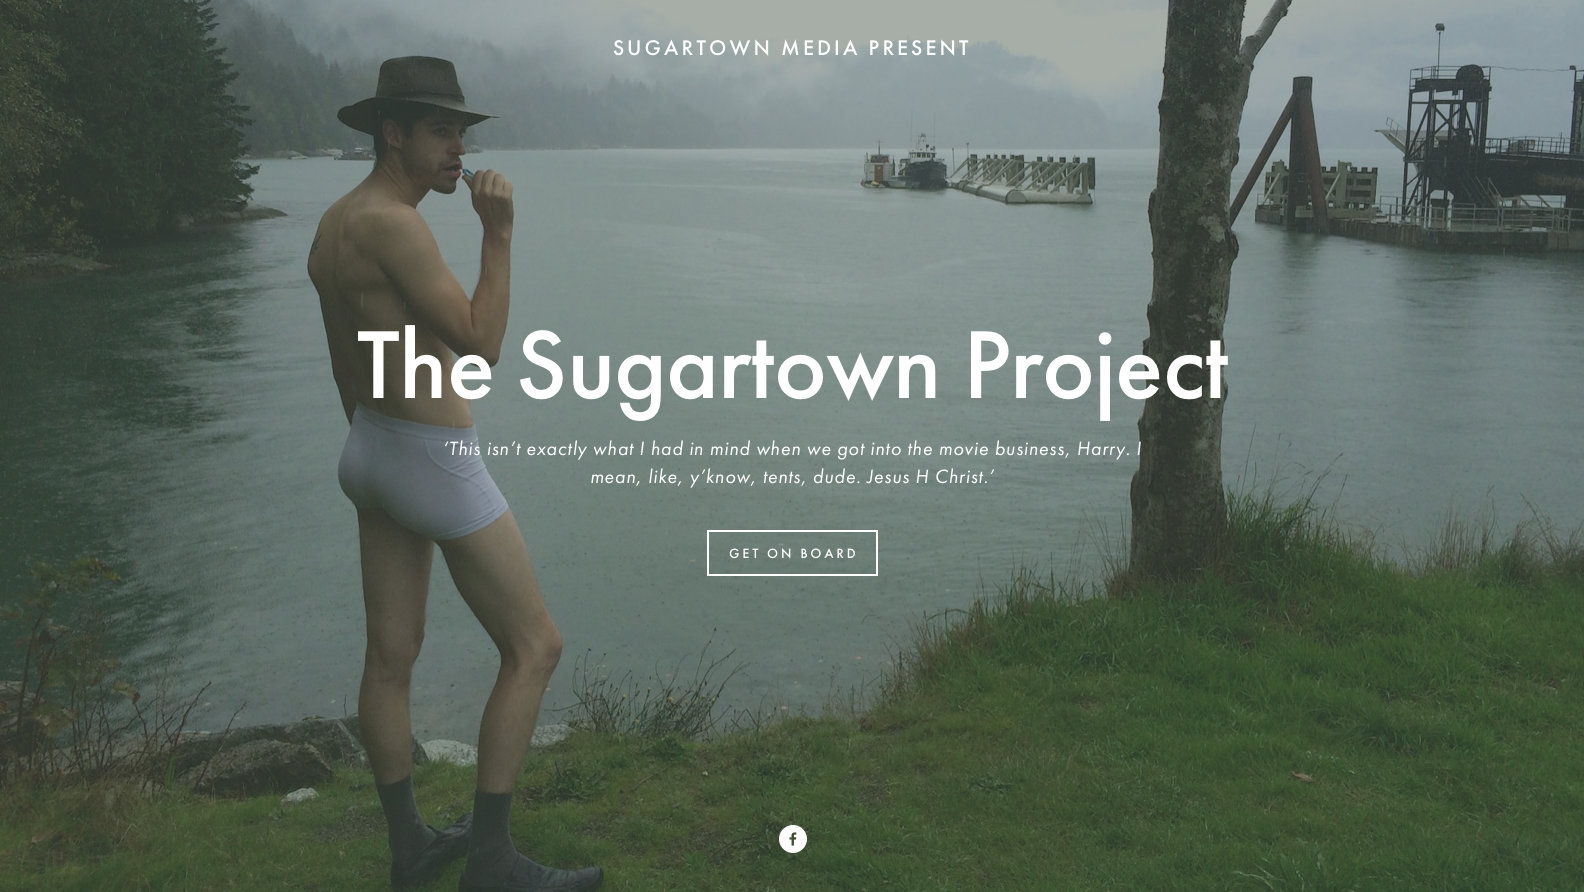 Born in Australia, nurtured in Vancouver, and with creative tentacles extending to stage, film, music, photography, journalism, writing and graphic novels, the Sugartown Project just keeps on growing. - www.thesugartownproject.com